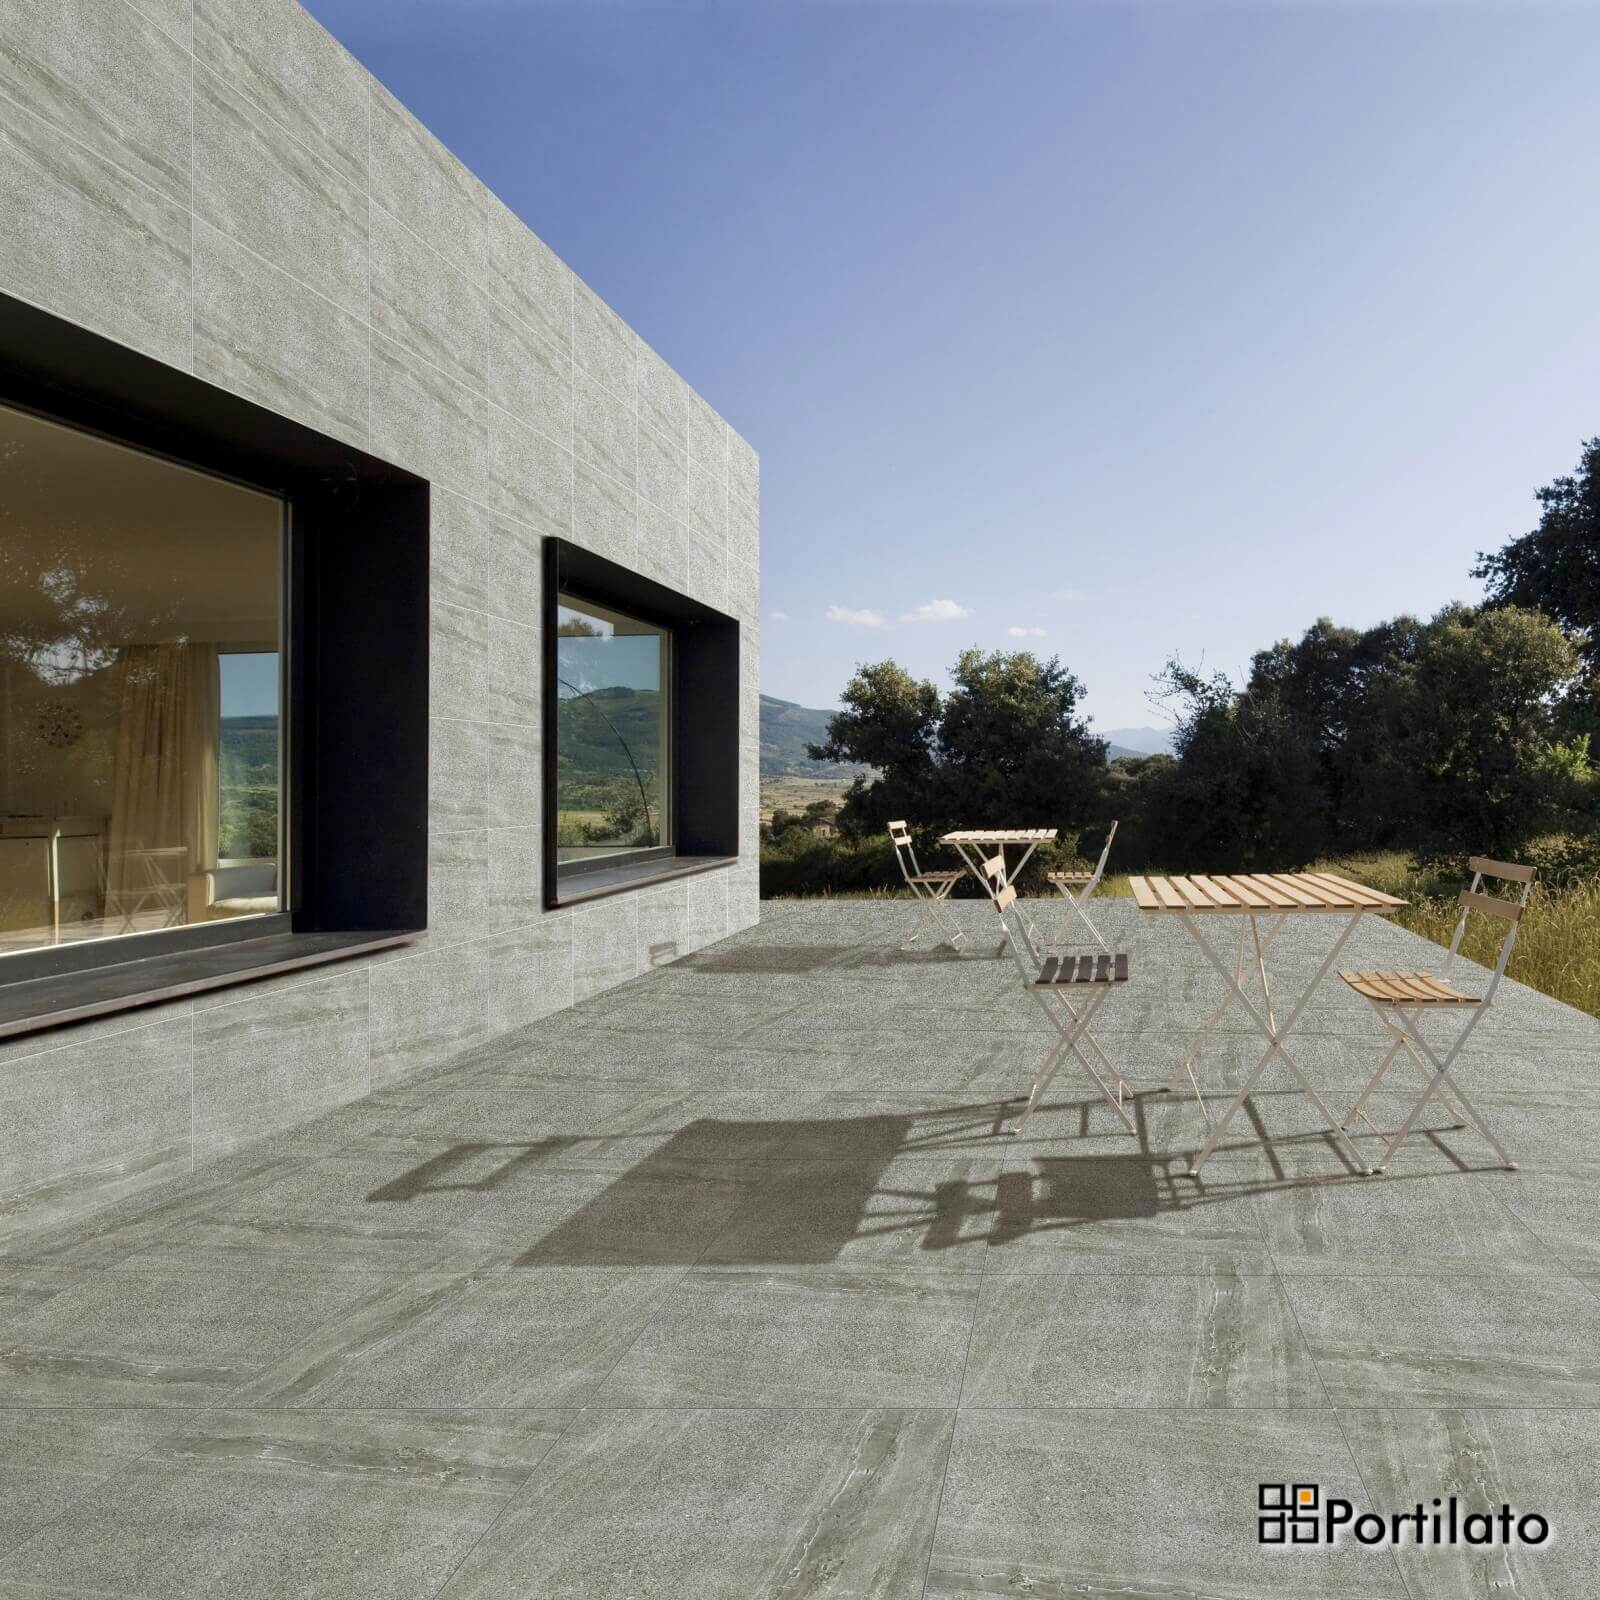 Porcelanato Portilato Cement - CG6002 (2)